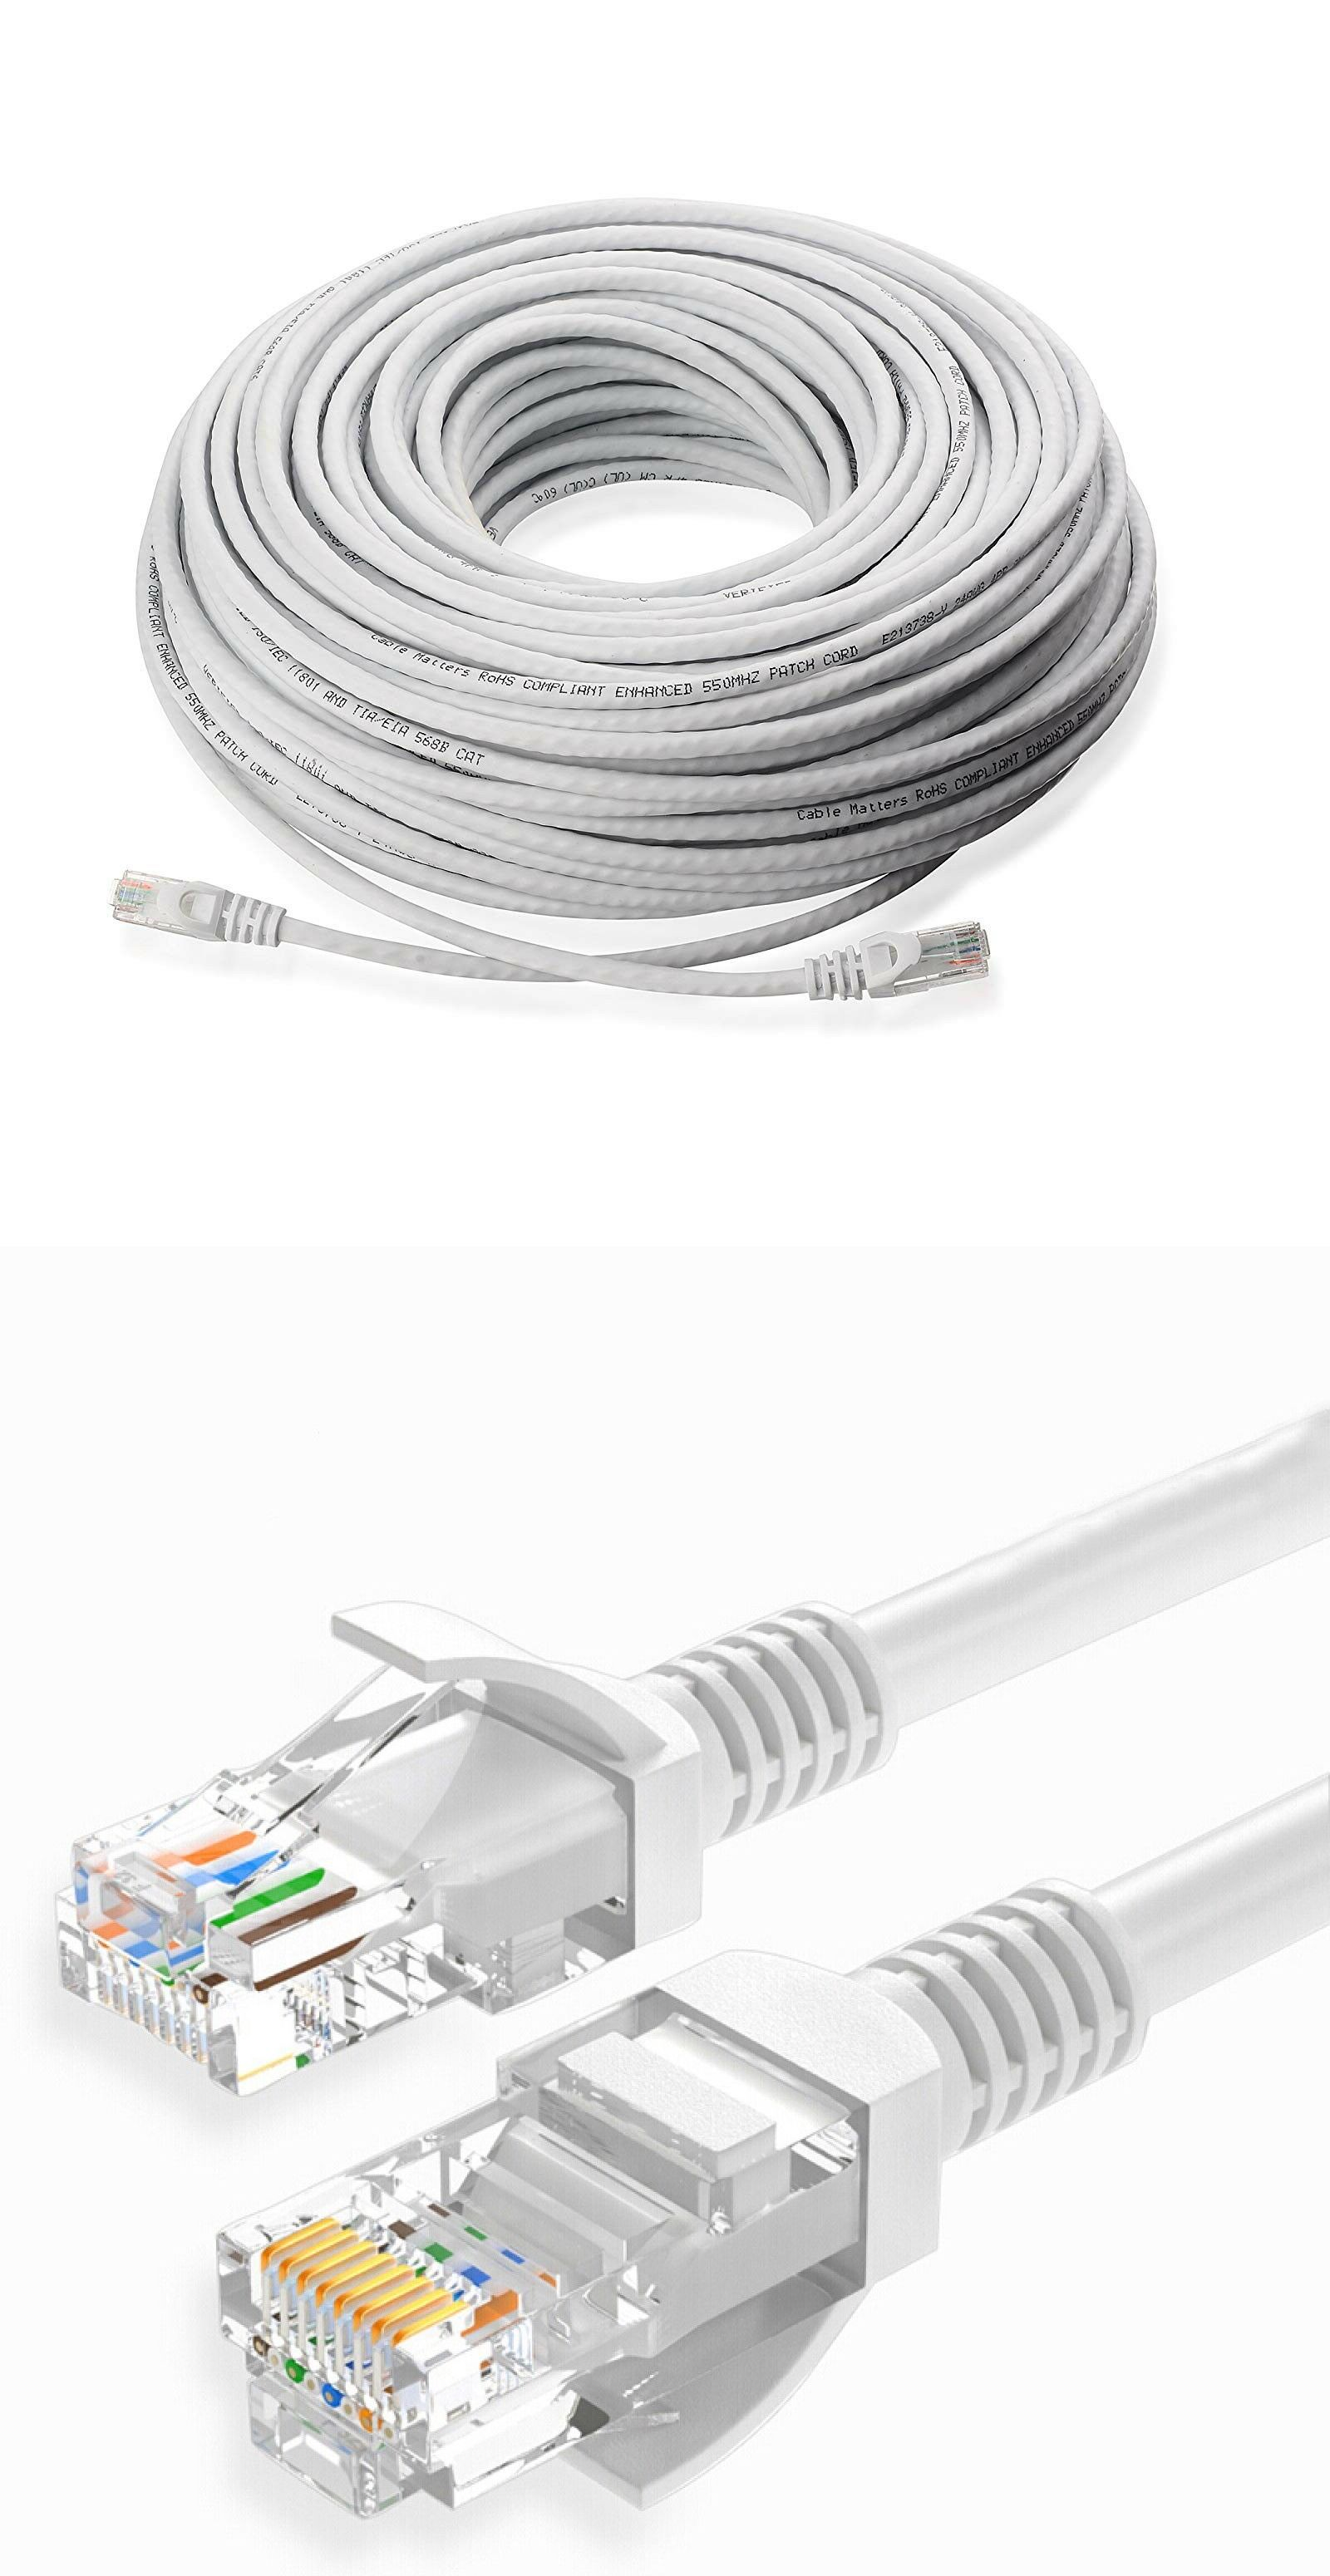 small resolution of ethernet cables rj 45 8p8c 64035 100ft cat5e poe ip camera nvr ethernet cable